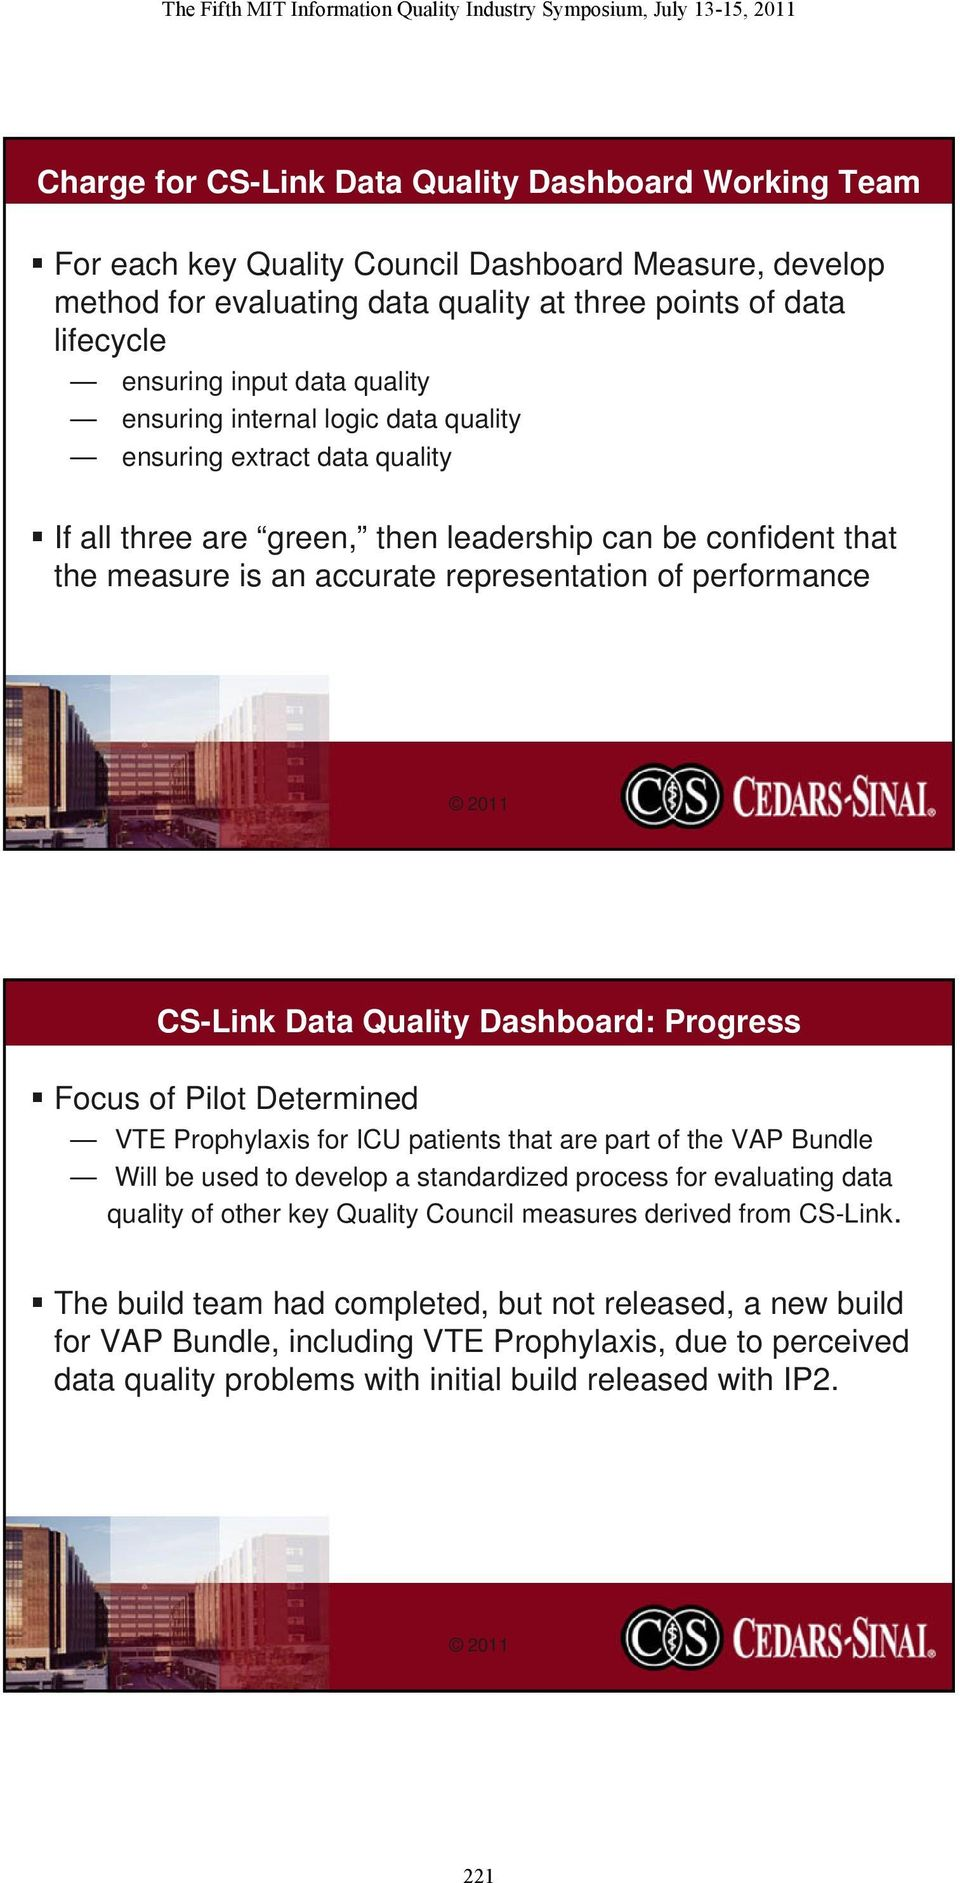 CS-Link Data Quality Dashboard: Progress Focus of Pilot Determined VTE Prophylaxis for ICU patients that are part of the VAP Bundle Will be used to develop a standardized process for evaluating data